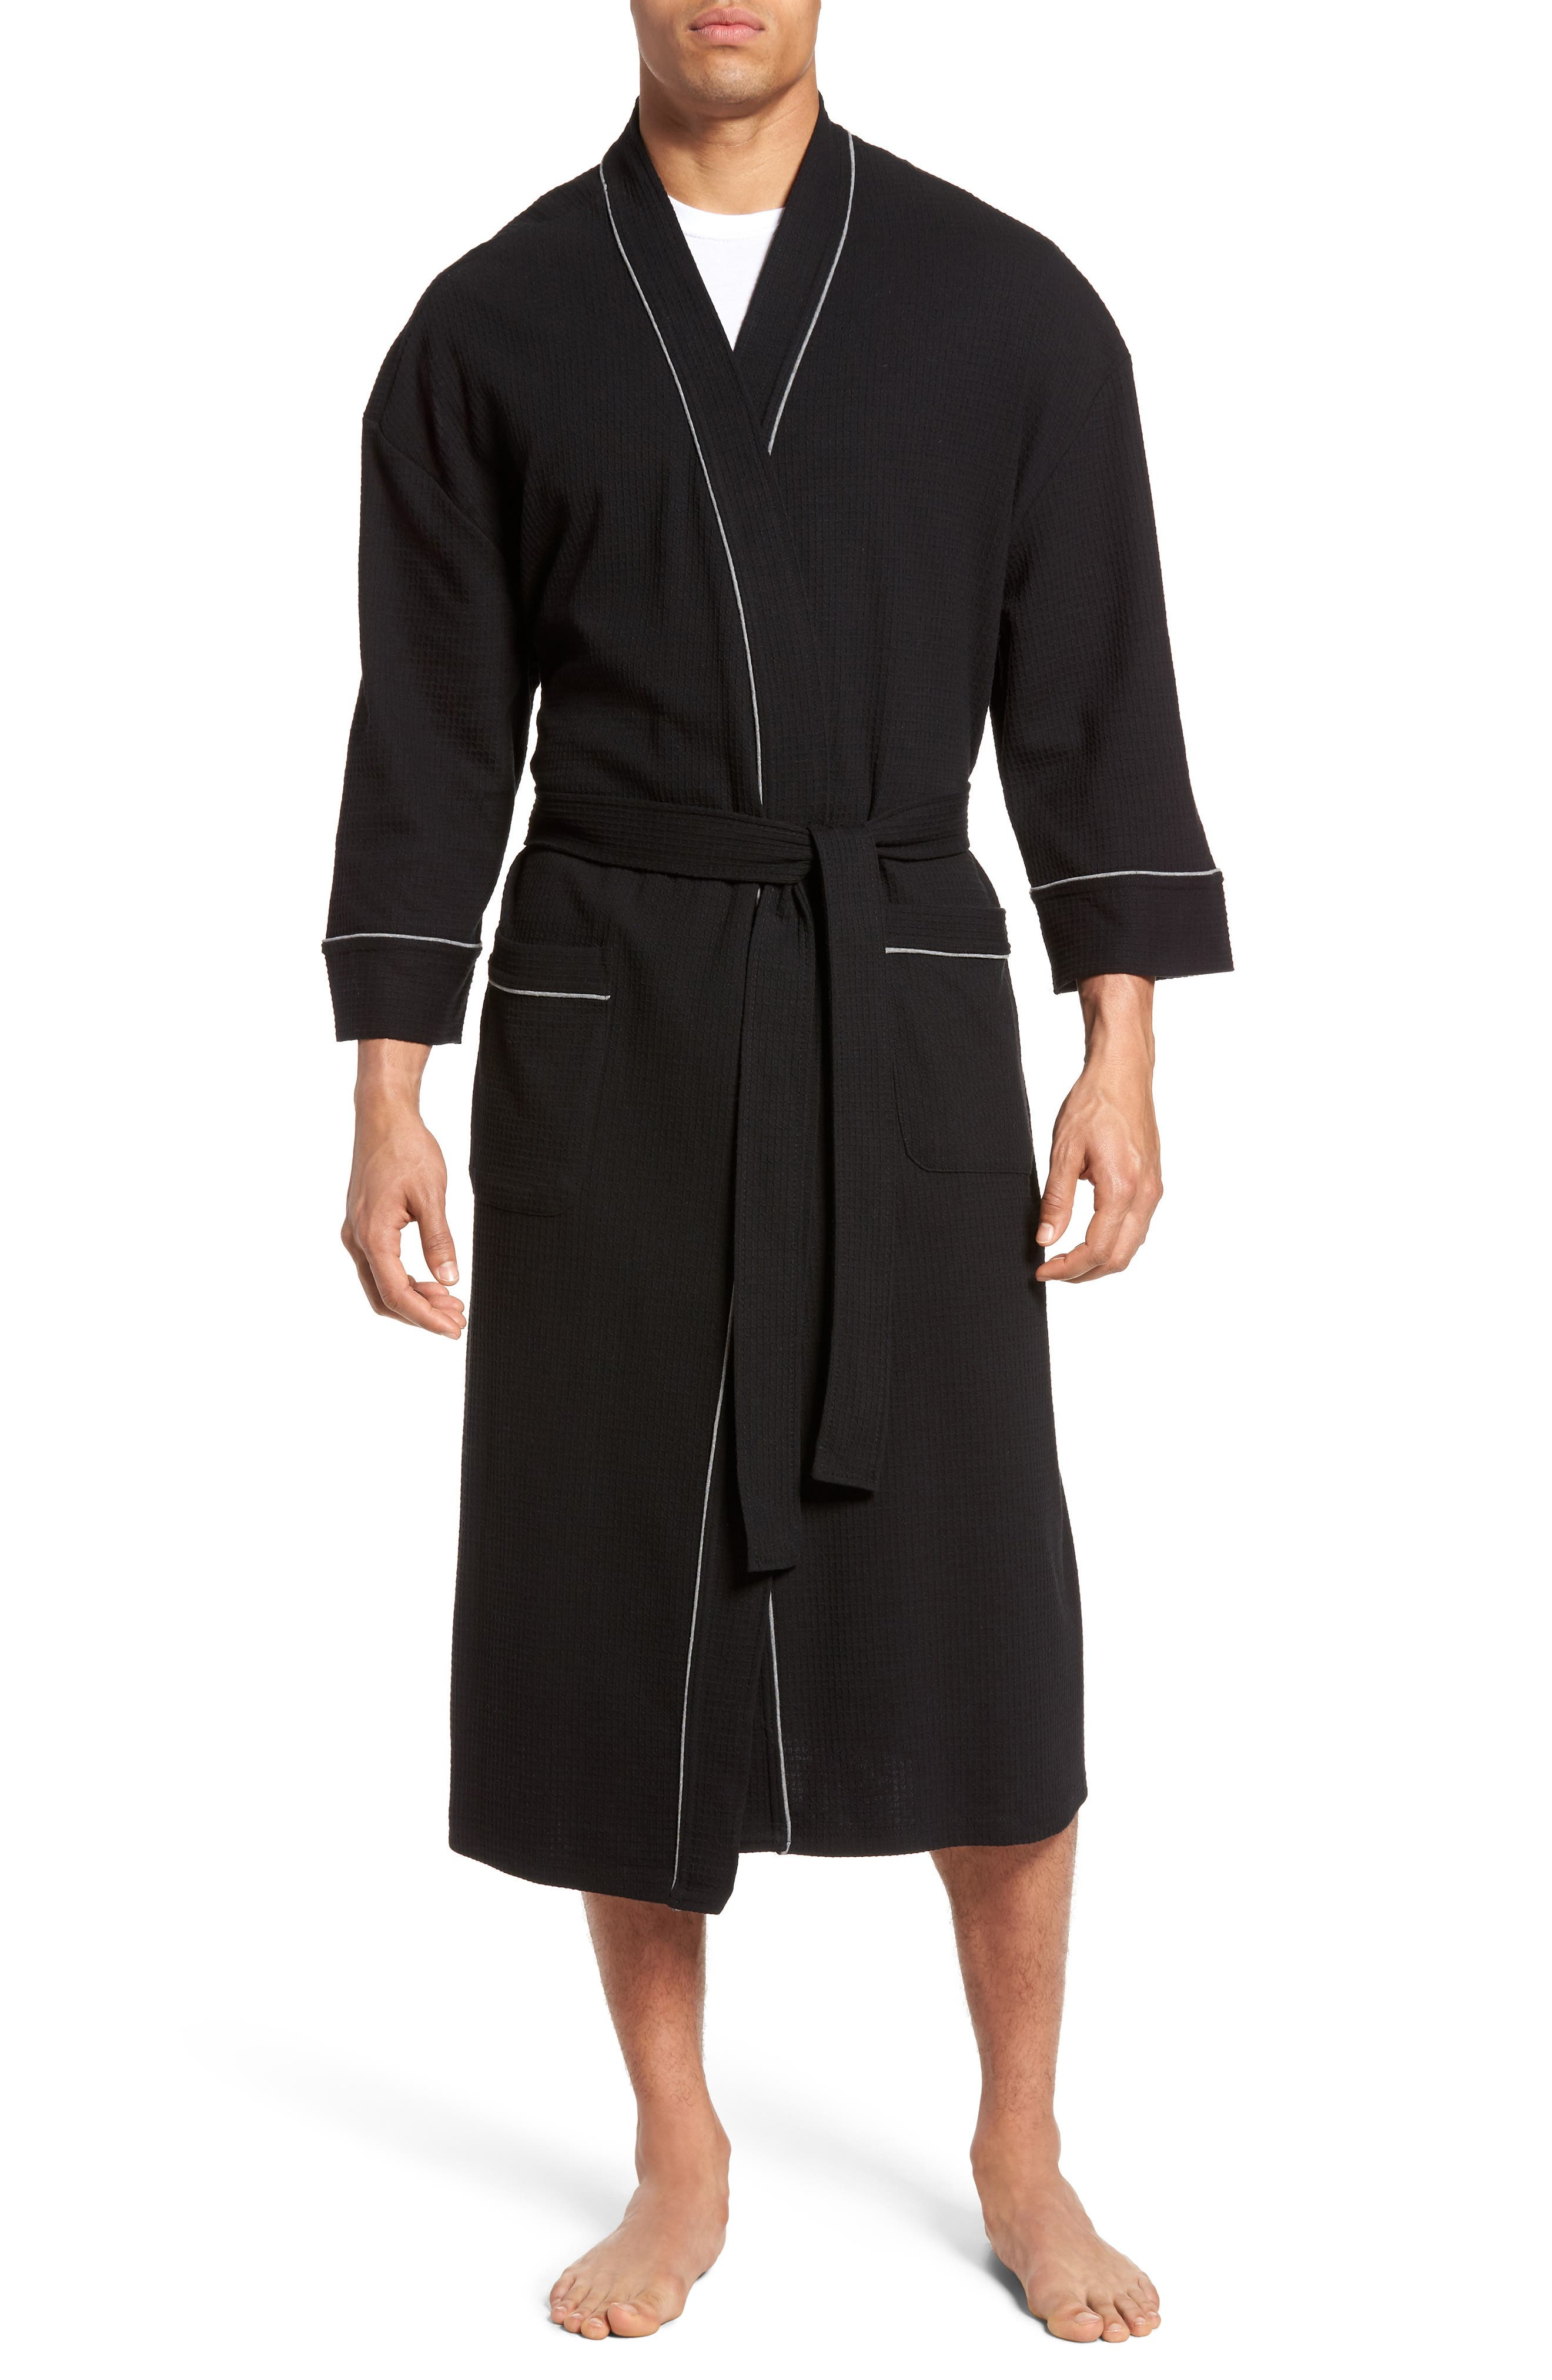 MAJESTIC INTERNATIONAL, Waffle Knit Robe, Main thumbnail 1, color, BLACK